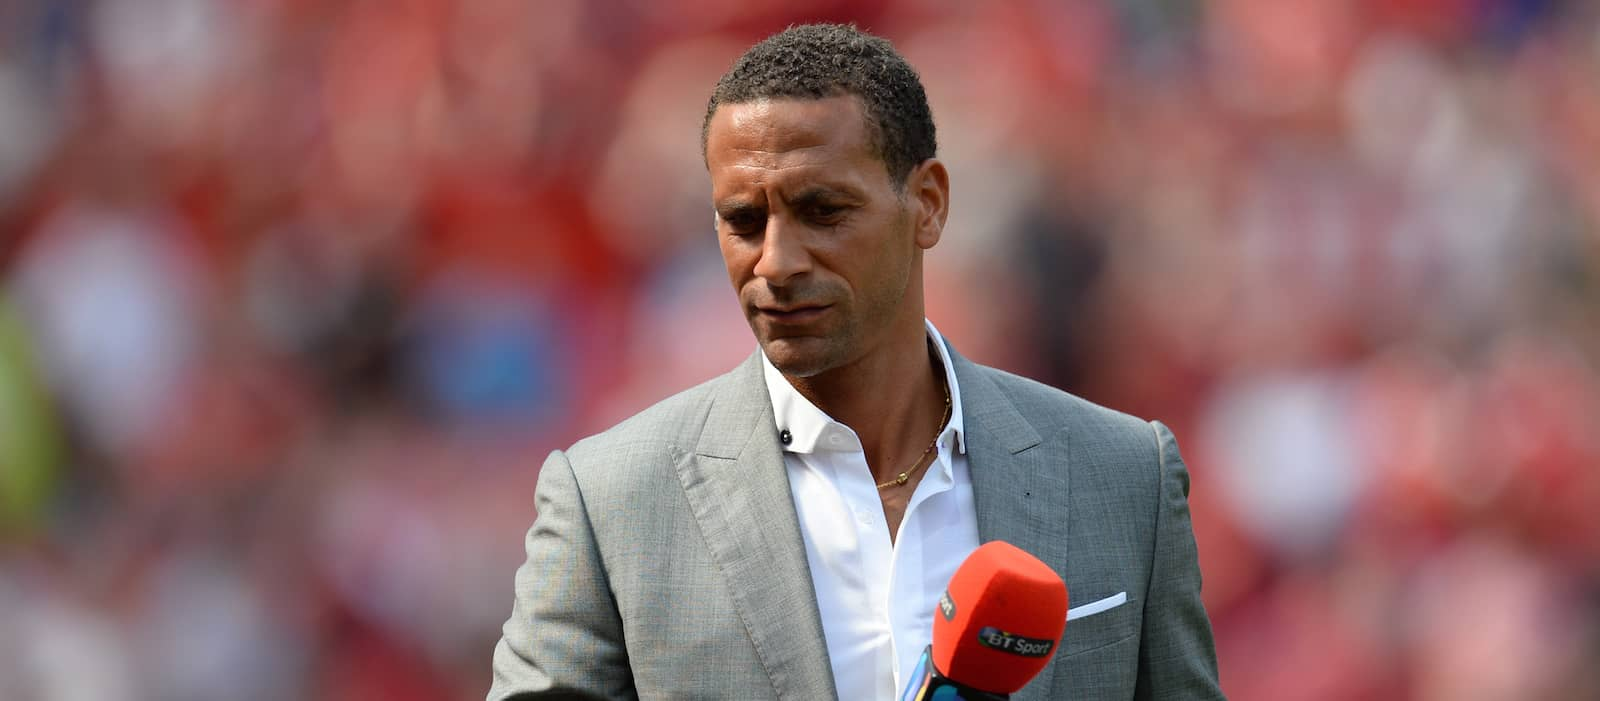 Rio Ferdinand supports under-fire Manchester United player